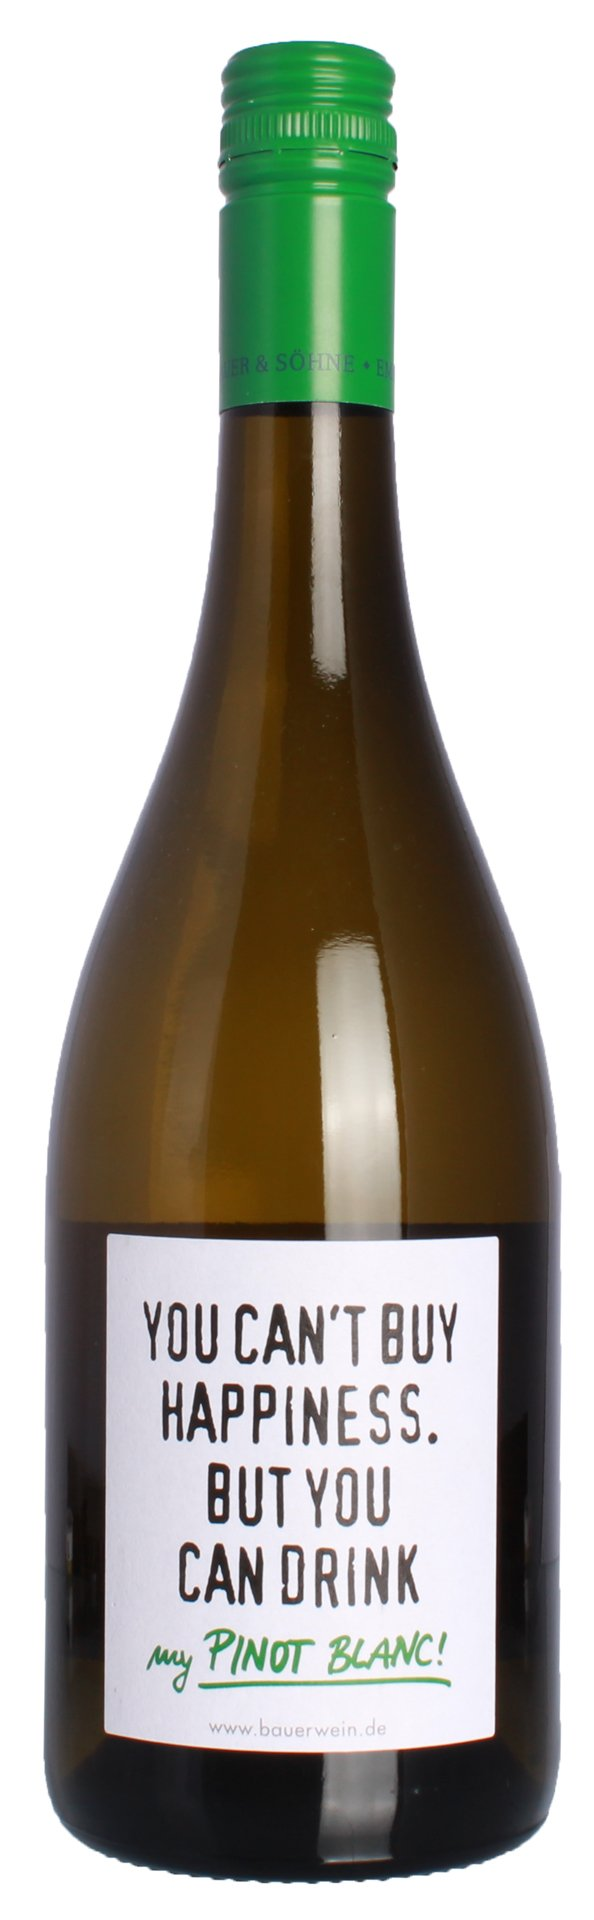 Weingut-Emil-Bauer-You-cant-buy-happiness-But-you-can-drink-my-Pinot-Blanc-QbA-Weiwein-trocken